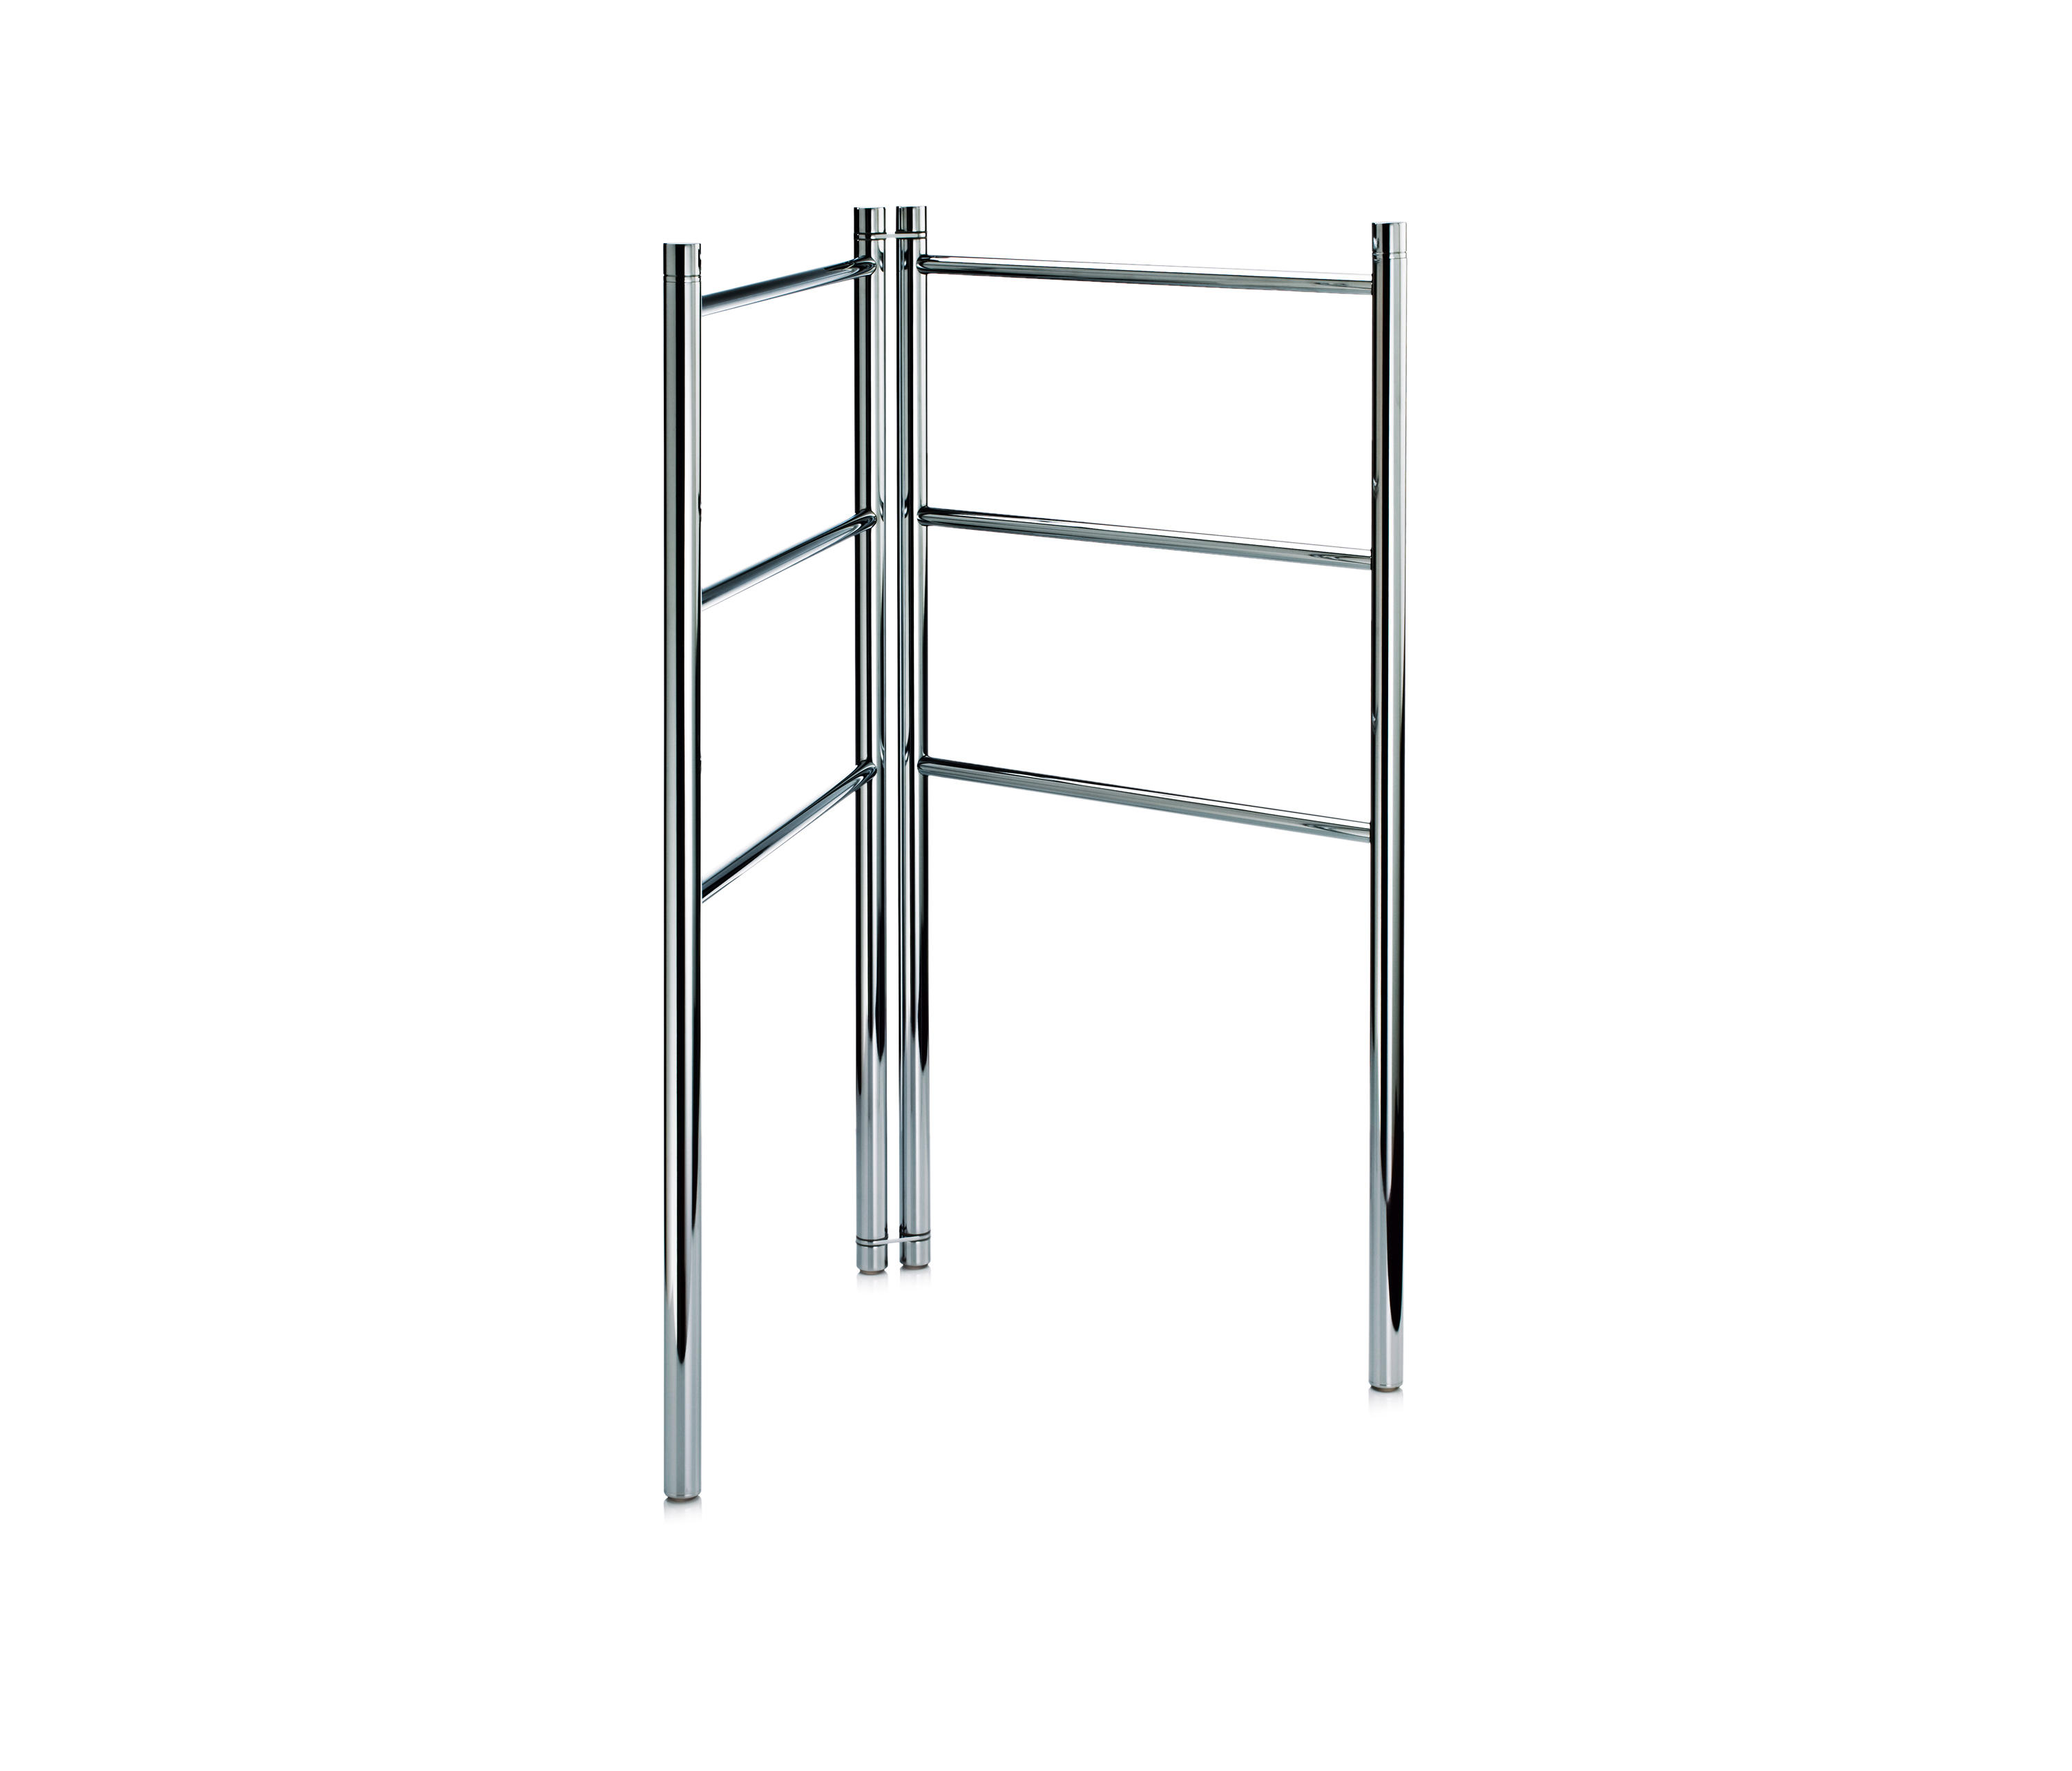 Decor Walther Handtuchhalter Ht 15 Towel Rails From Decor Walther Architonic